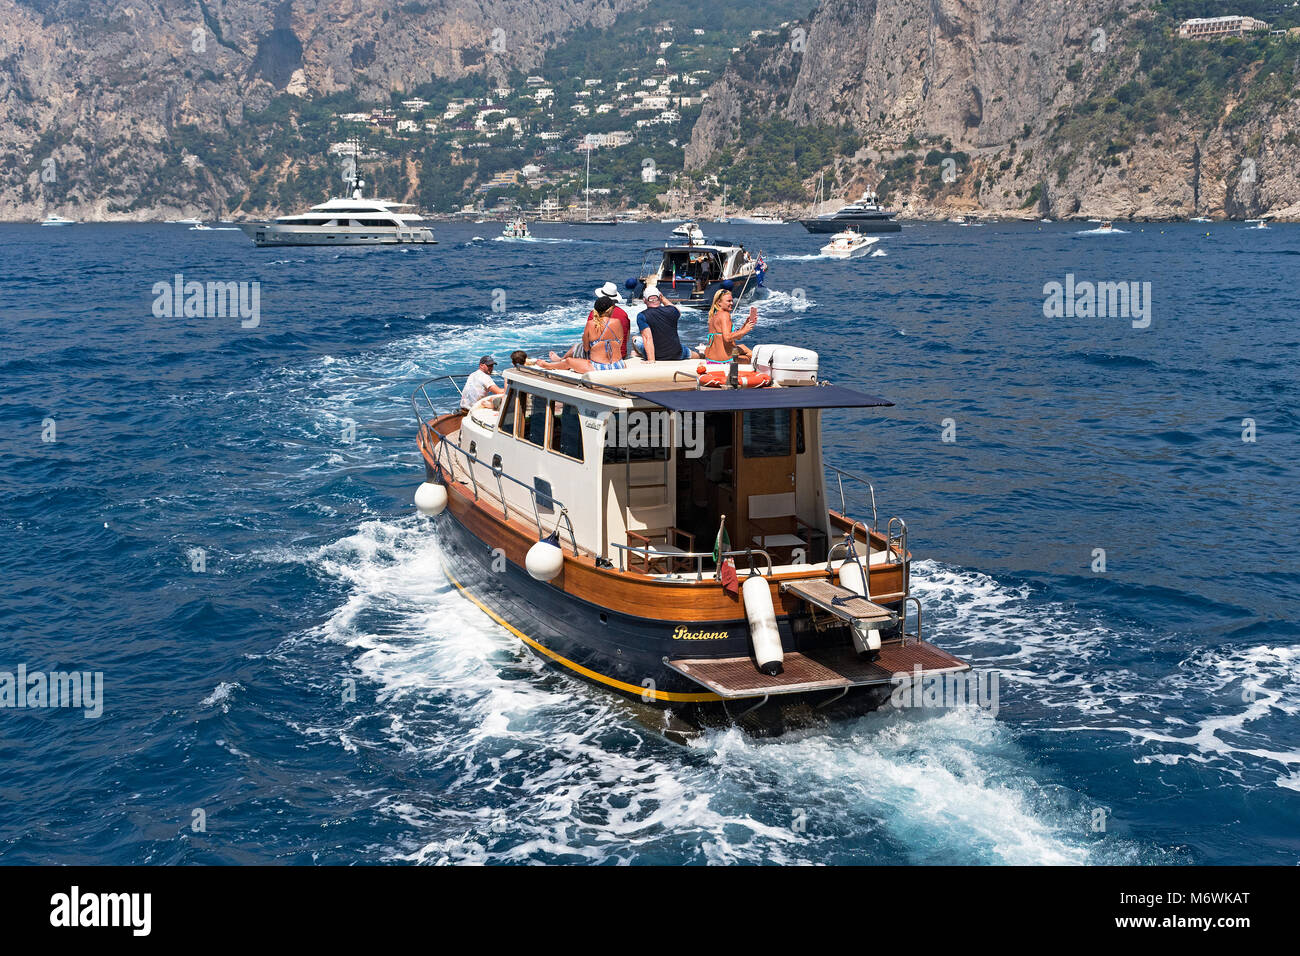 tourists on a boat trip around the island capri, bay of naples, italy. - Stock Image